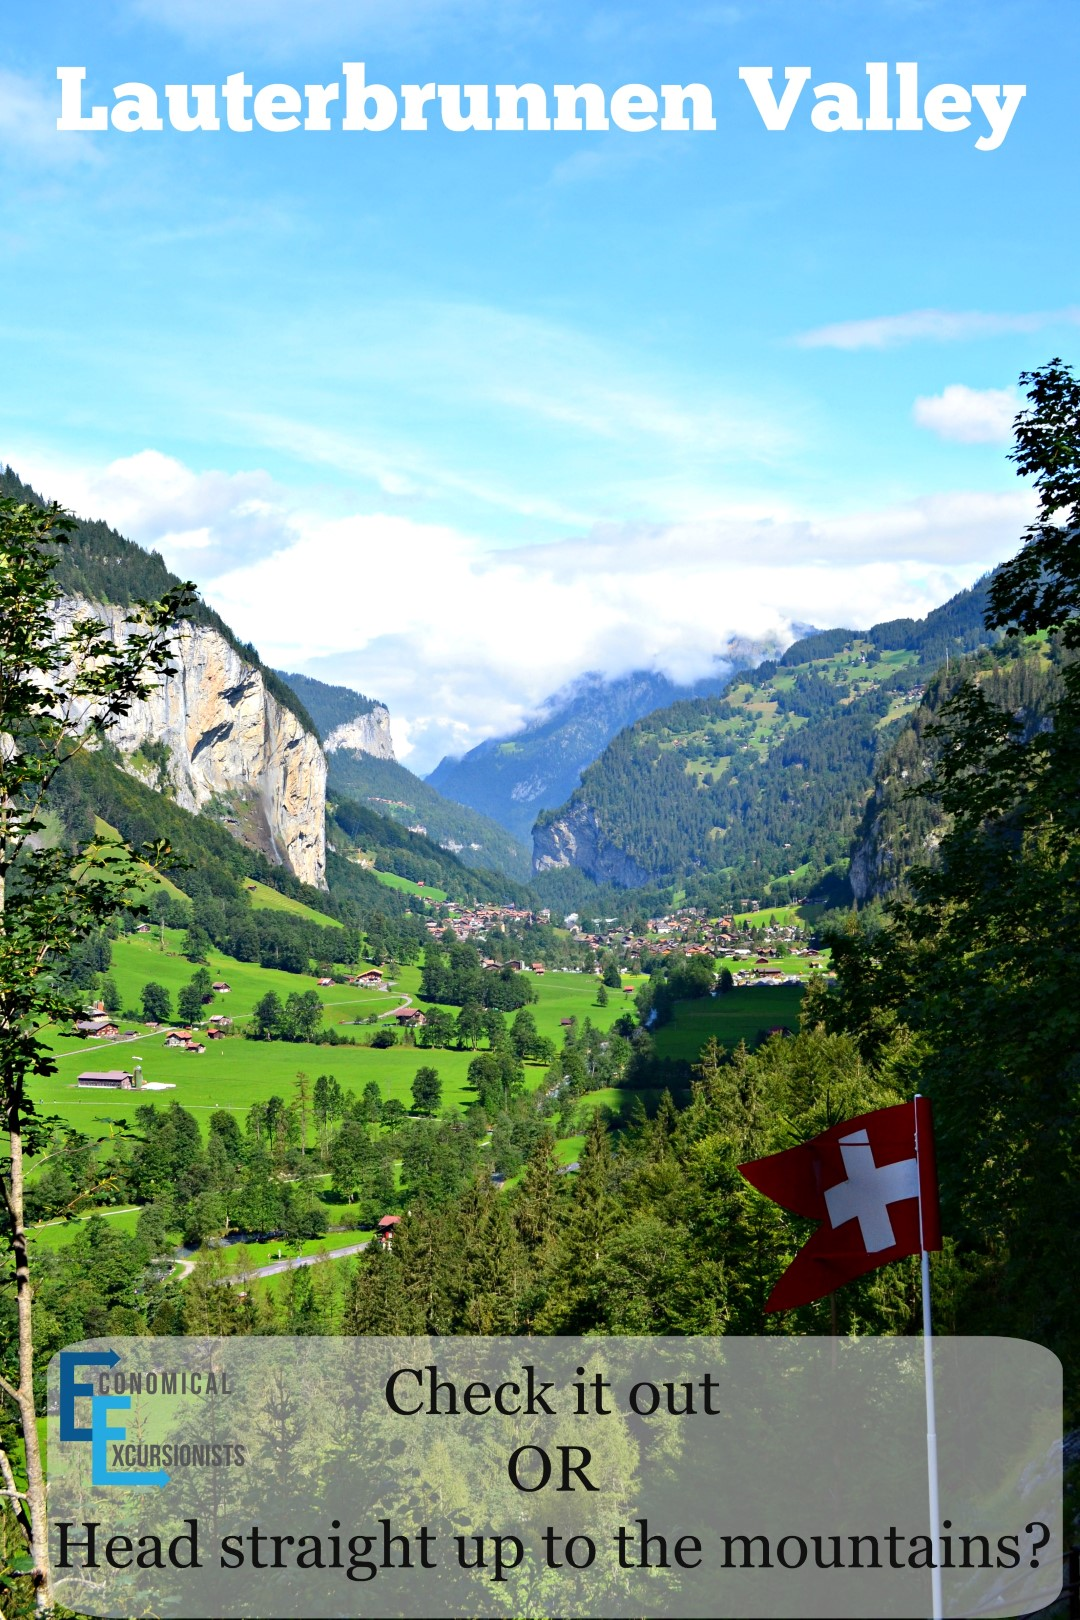 Lauterbrunnen Valley: Skip it or check it out?